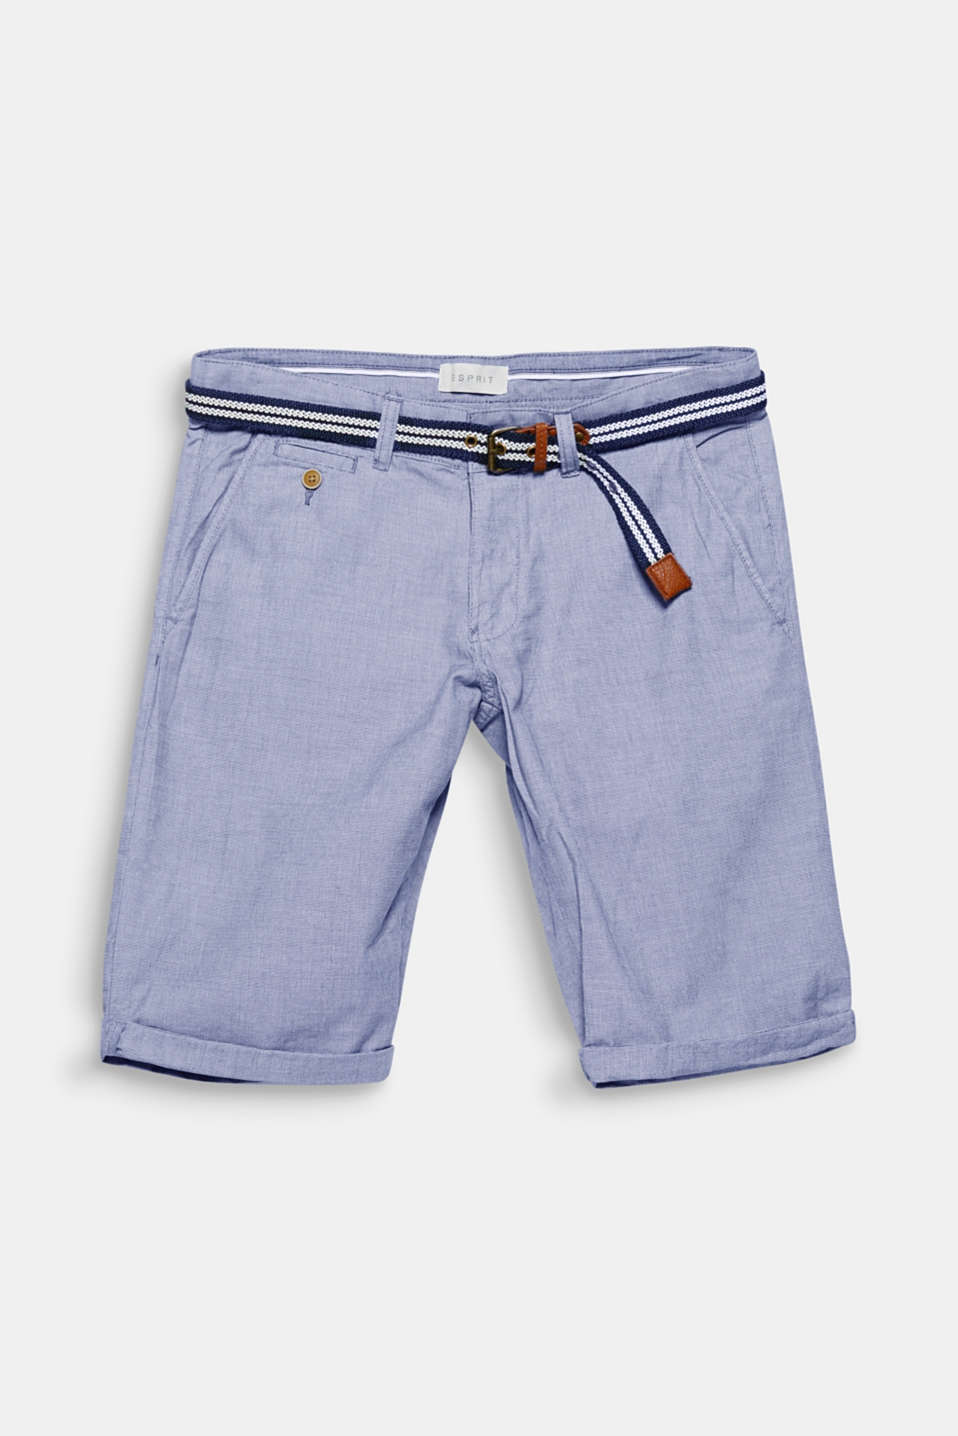 The fine latticework pattern and nautical striped belt give these Bermuda shorts a distinctive combination of patterns.